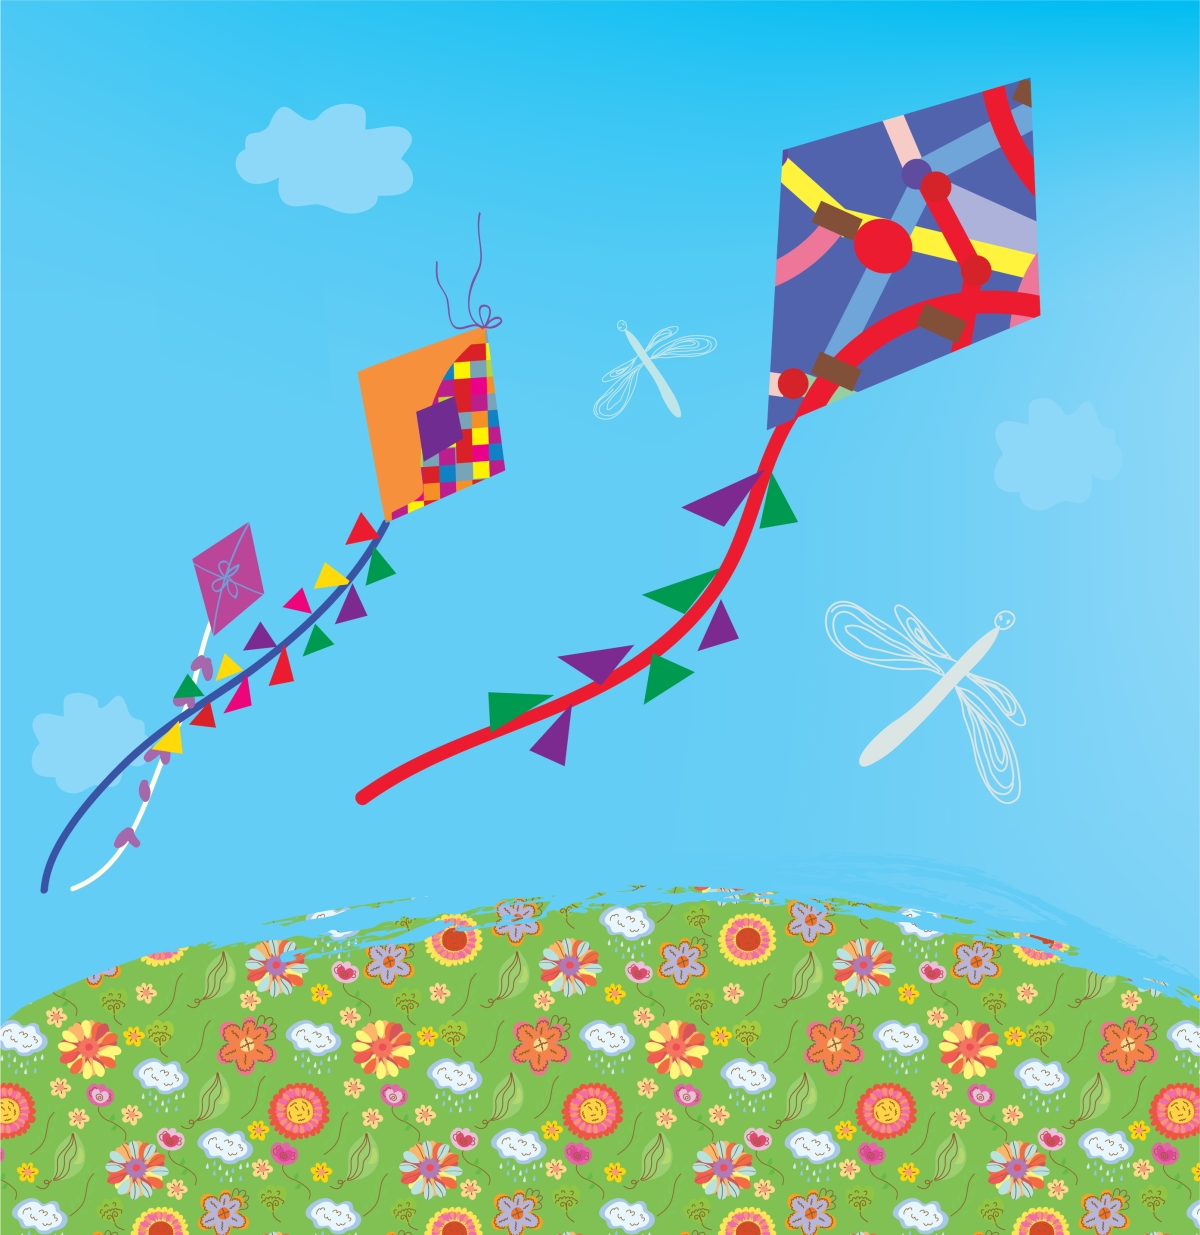 … kites across the sky